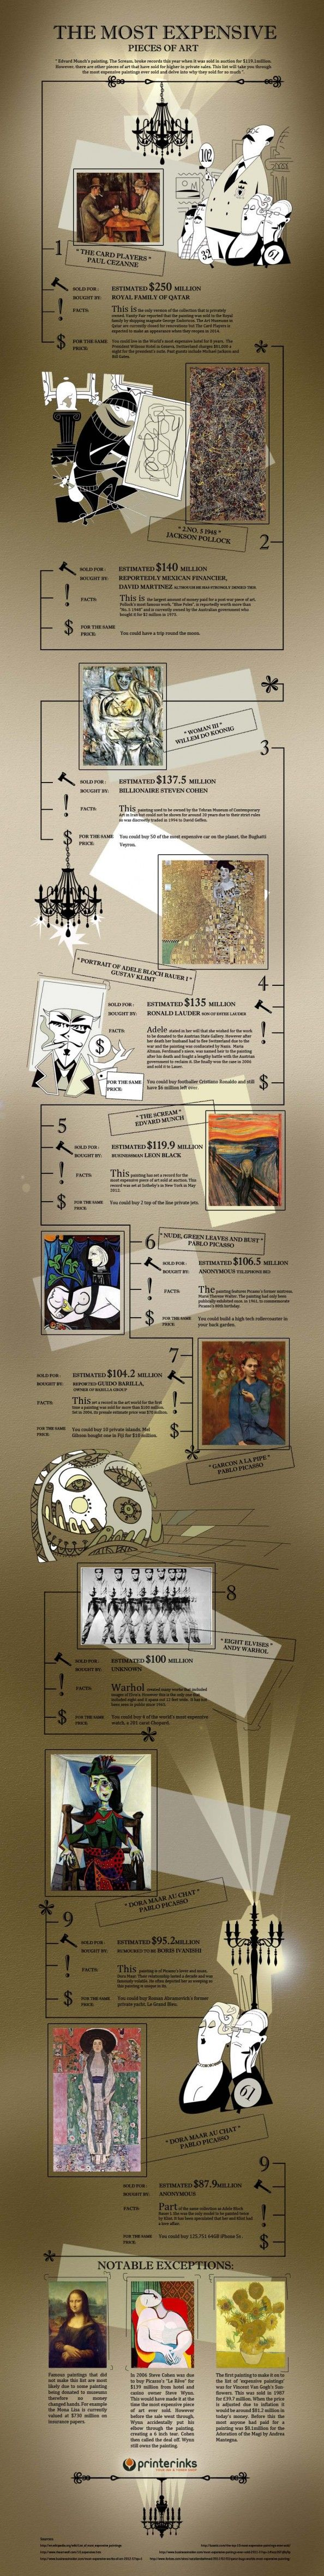 the most expensive pieces of art infographic Infographic